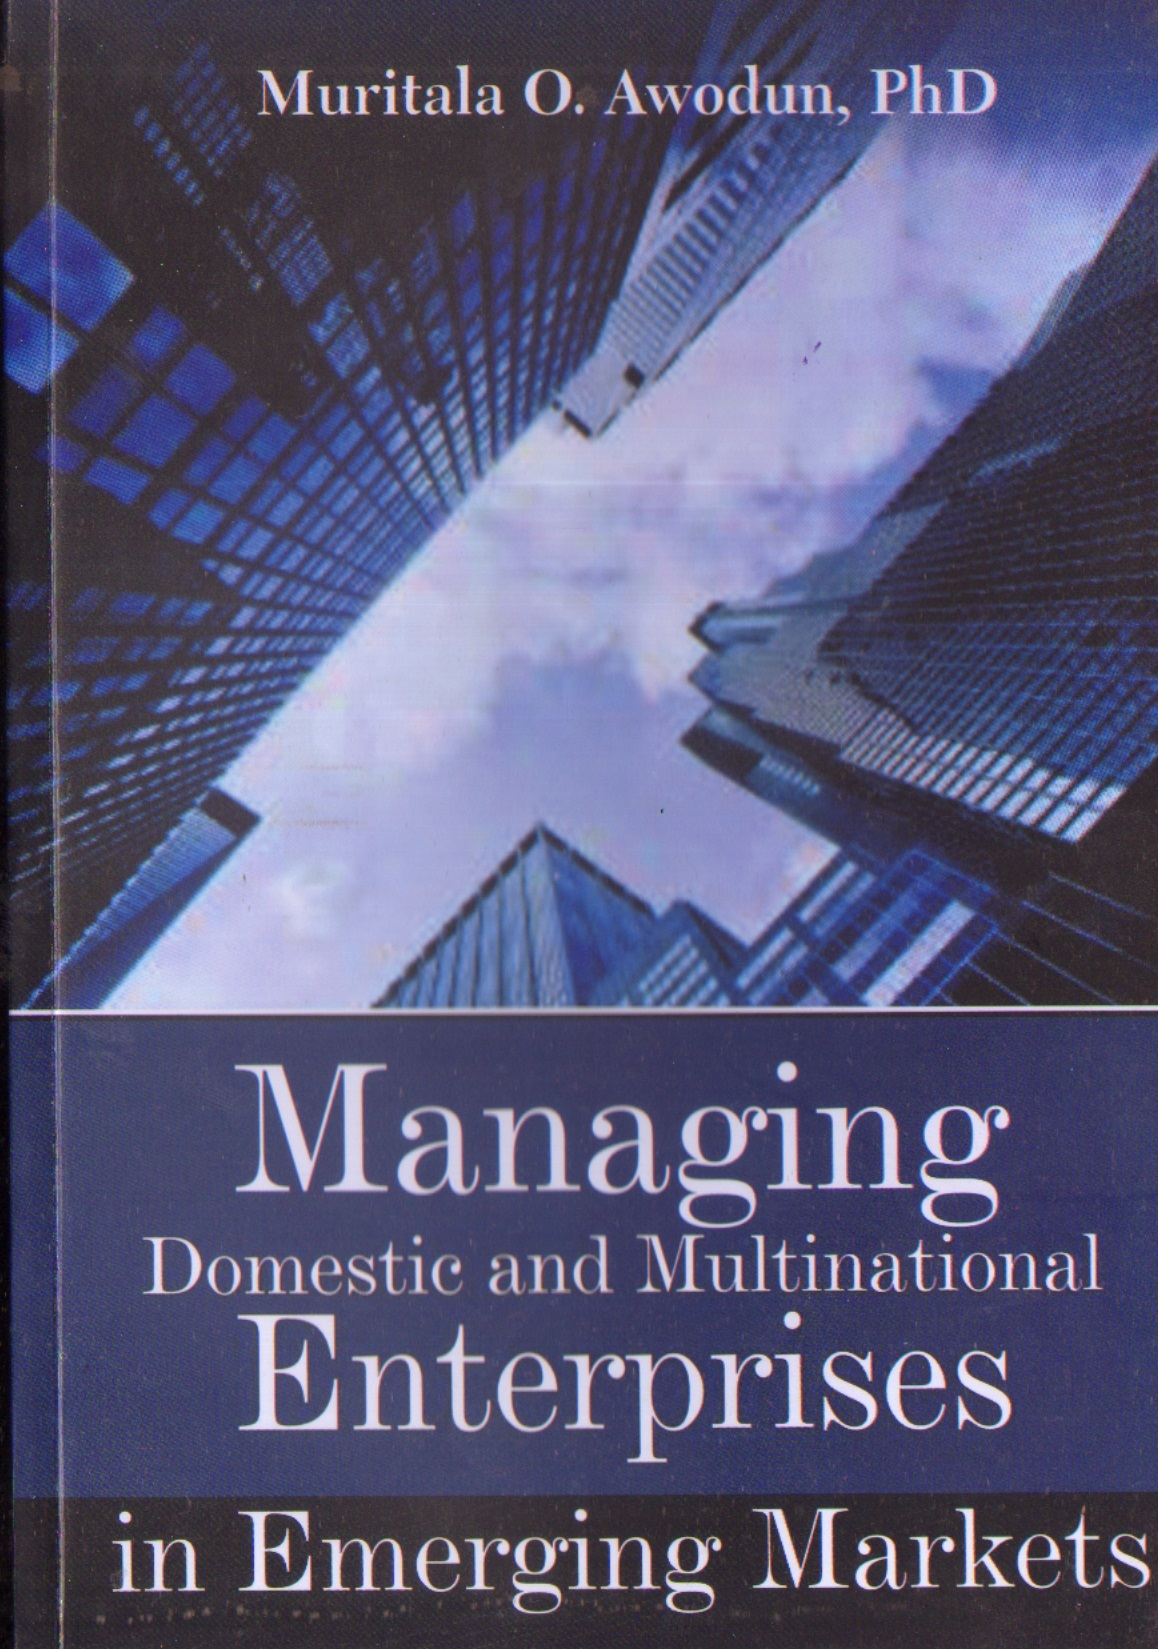 Managing Domestic and Multinational Enterprises in Emerging Martets